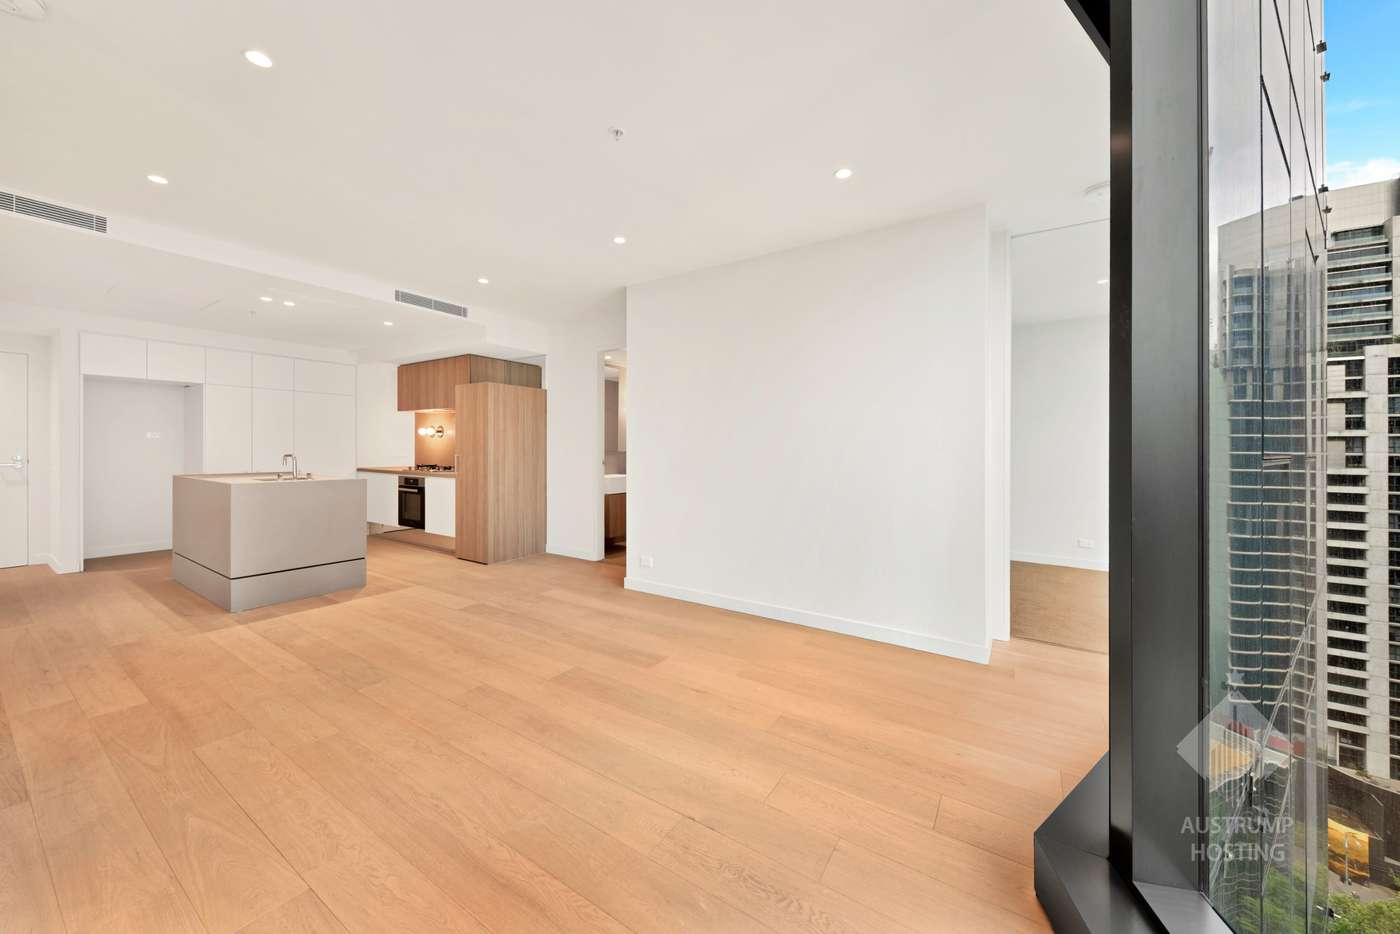 Main view of Homely apartment listing, 2013/350 Queen Street, Melbourne VIC 3000